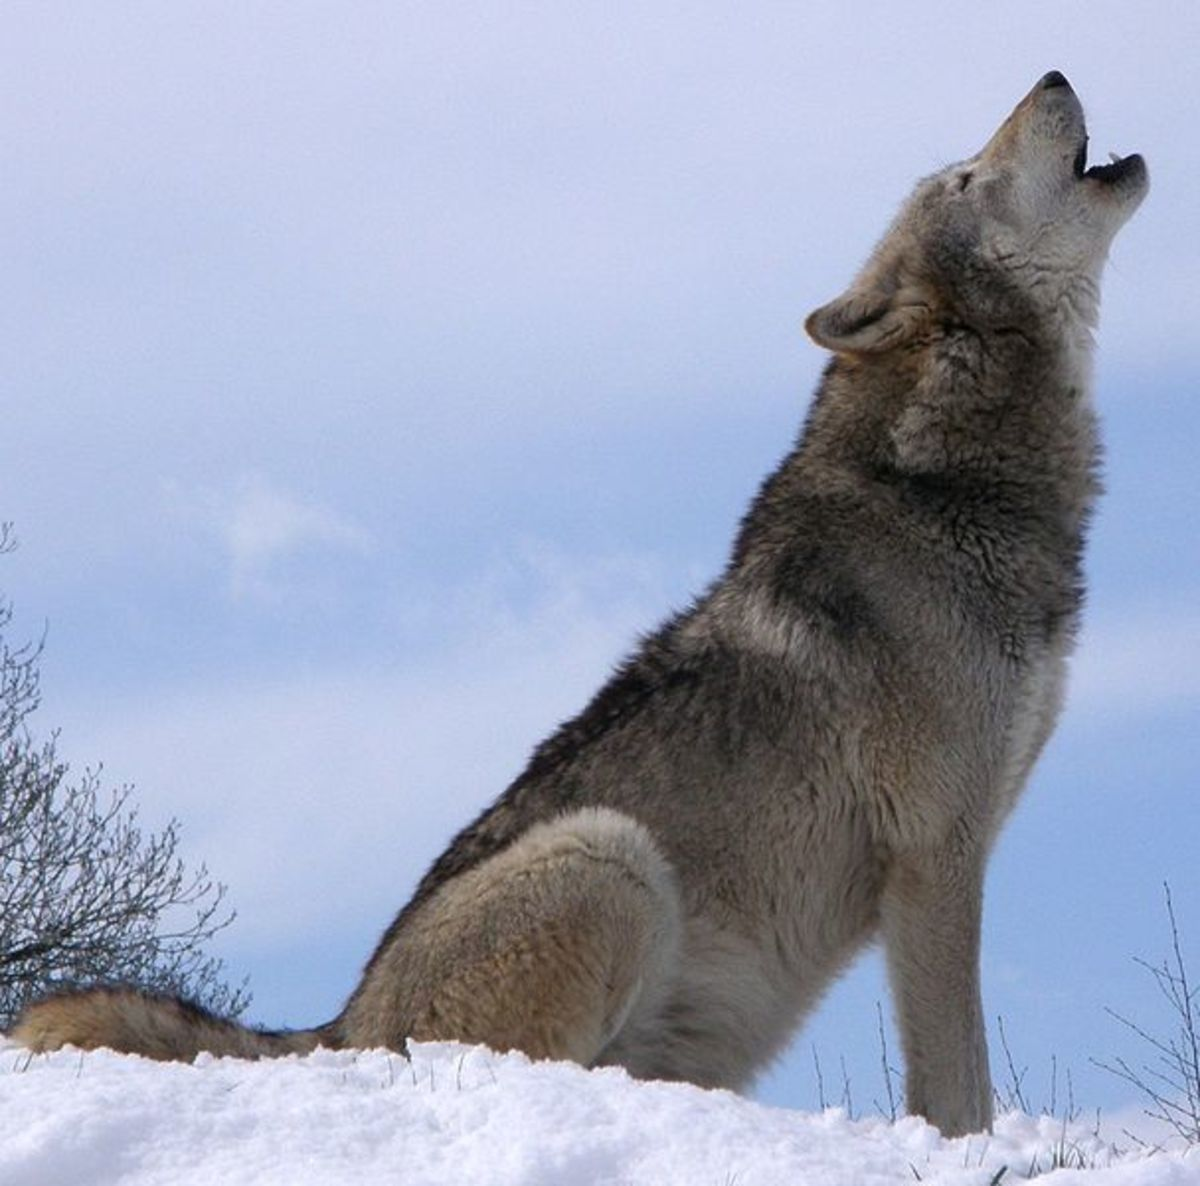 Wolves prefer to howl from an elevated position to project the sound further. A lone Wolf will howl frequently to gain information from nearby packs. It can gauge the response and tell if any ranks are absent, and decide whether to try and enrol.